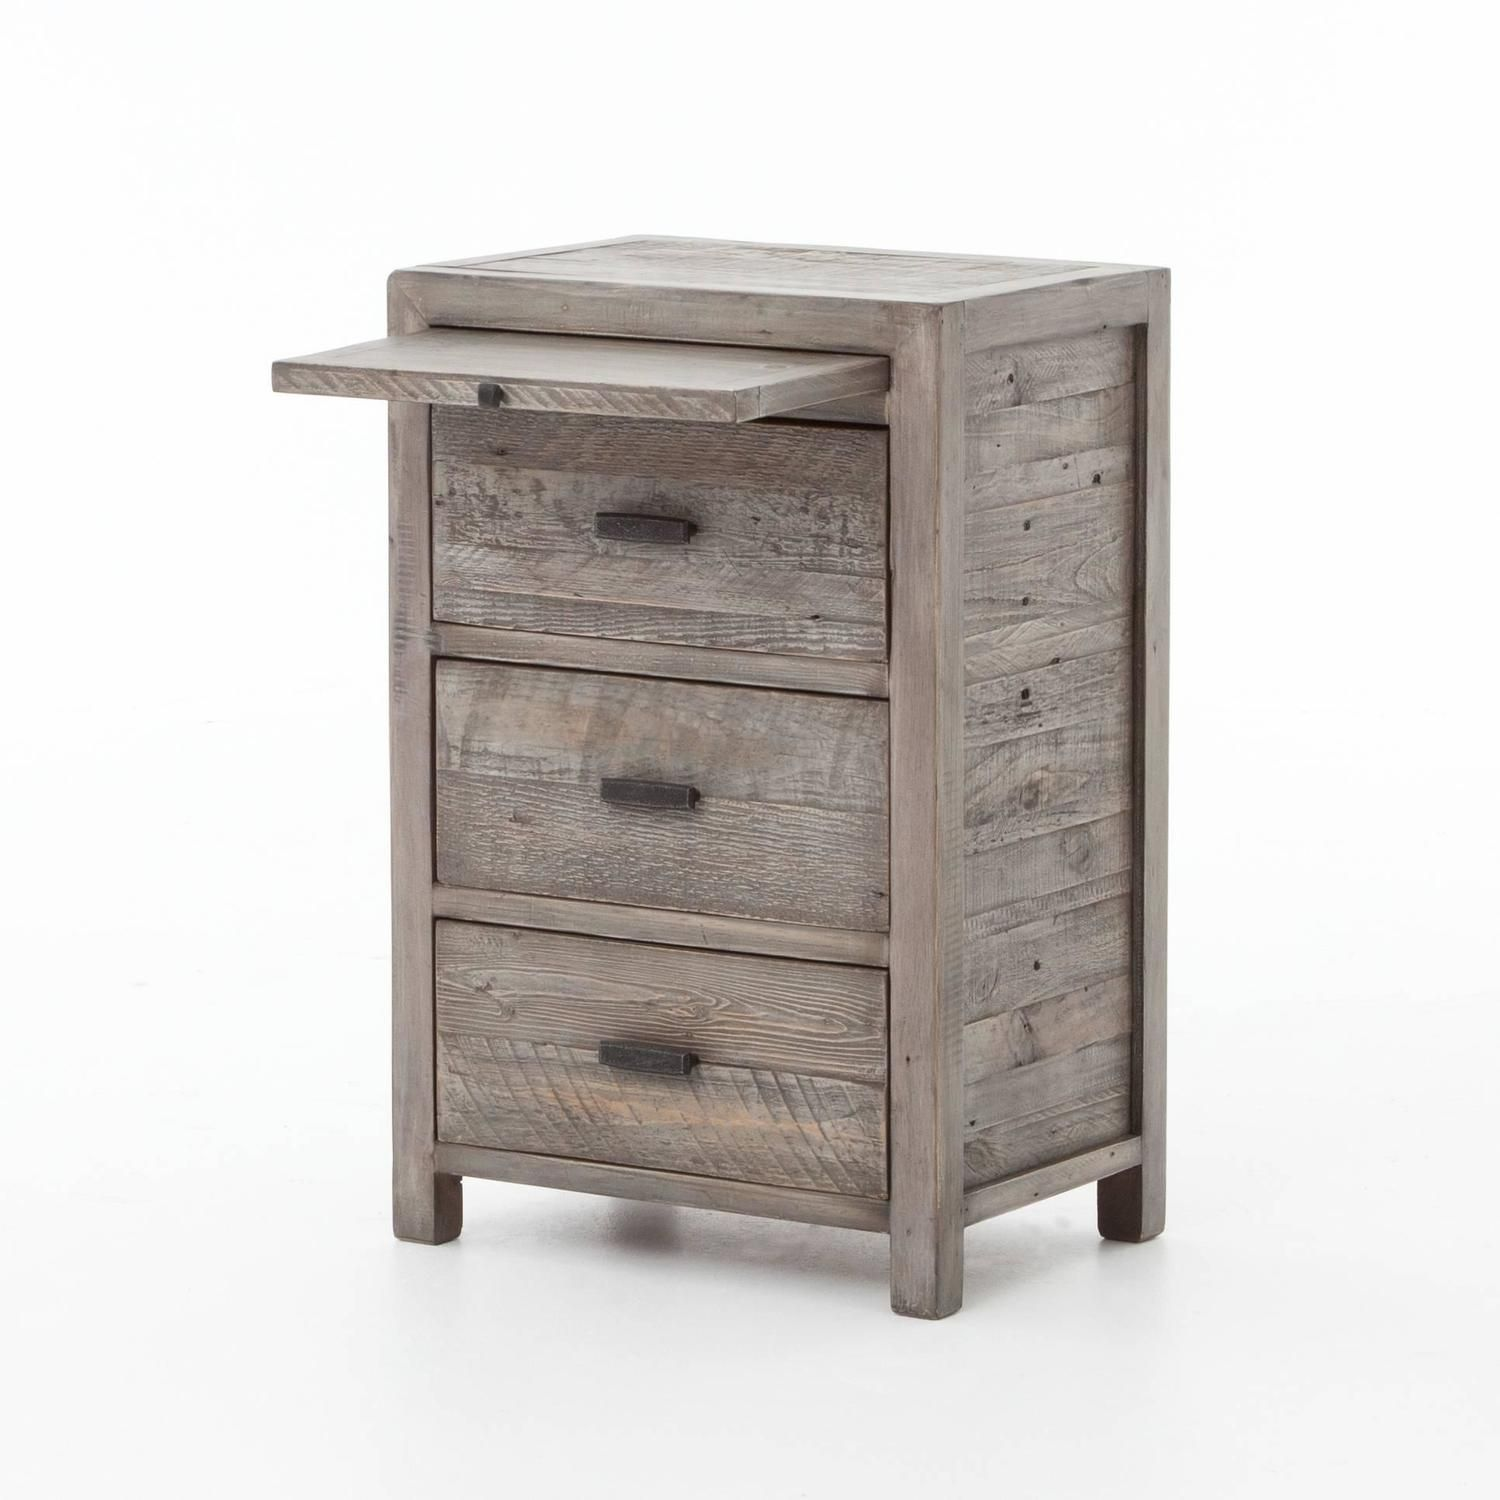 Contemporary Reclaimed Wood Nightstand Grey Color